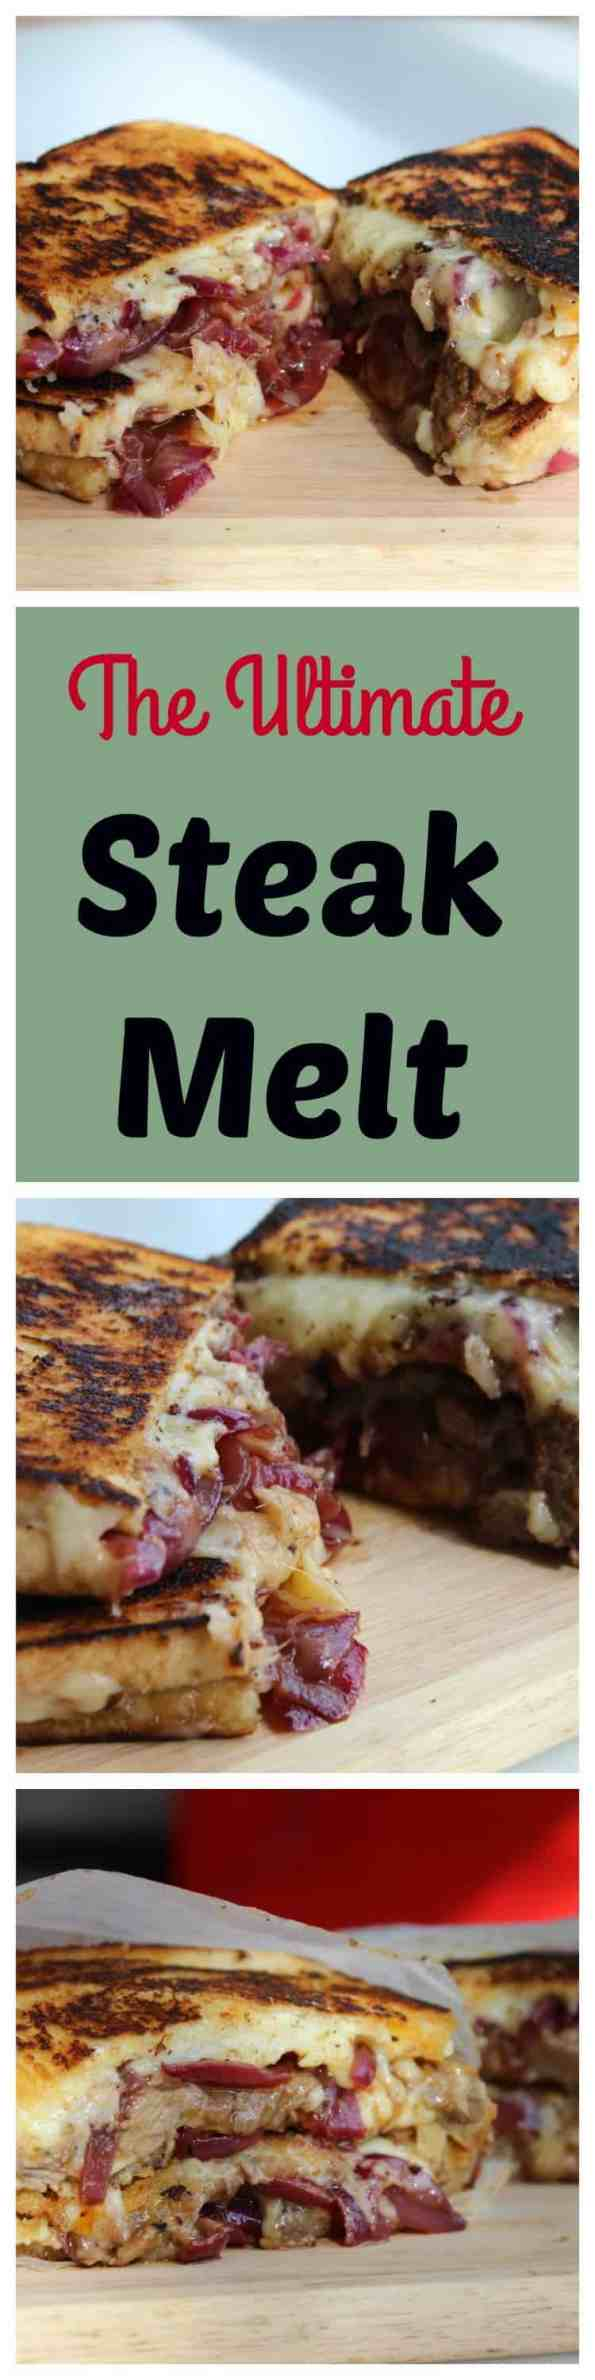 Ultimate Steak Melt, a grilled cheese packed full of flavour